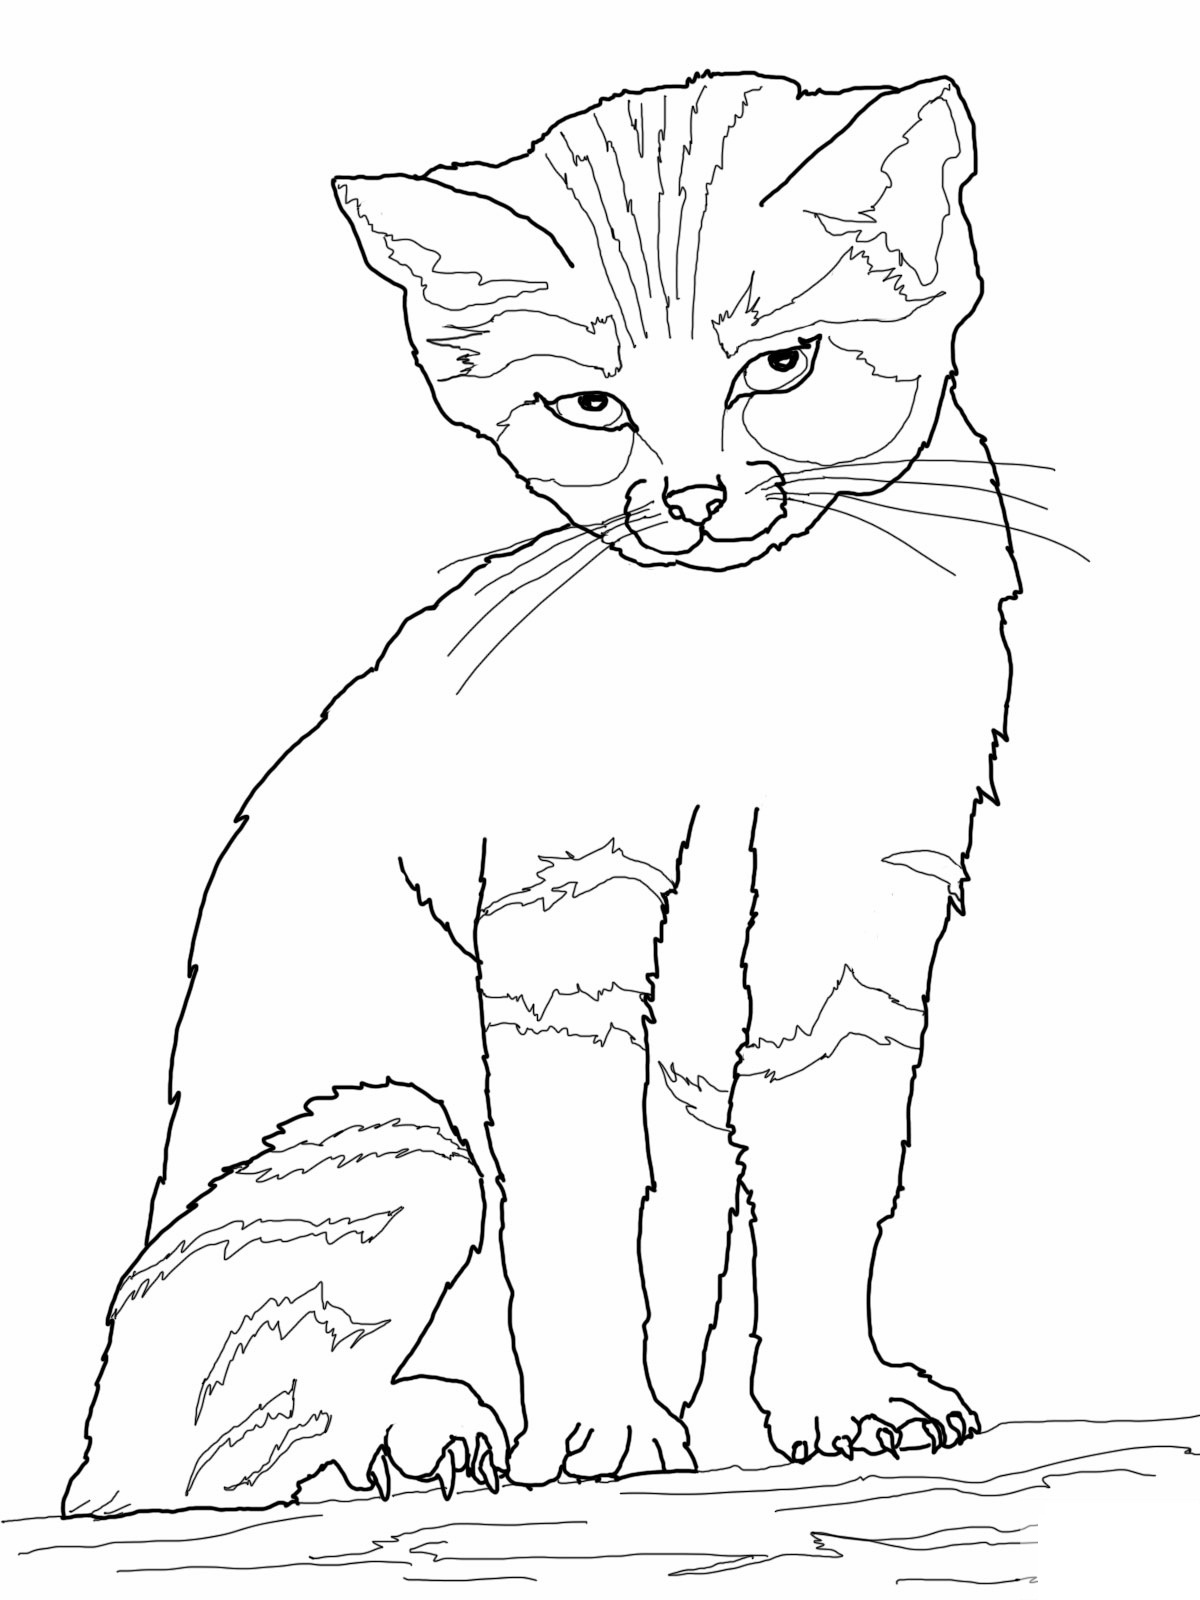 kittens coloring pages to print kittens coloring pages to print coloring kittens pages print to